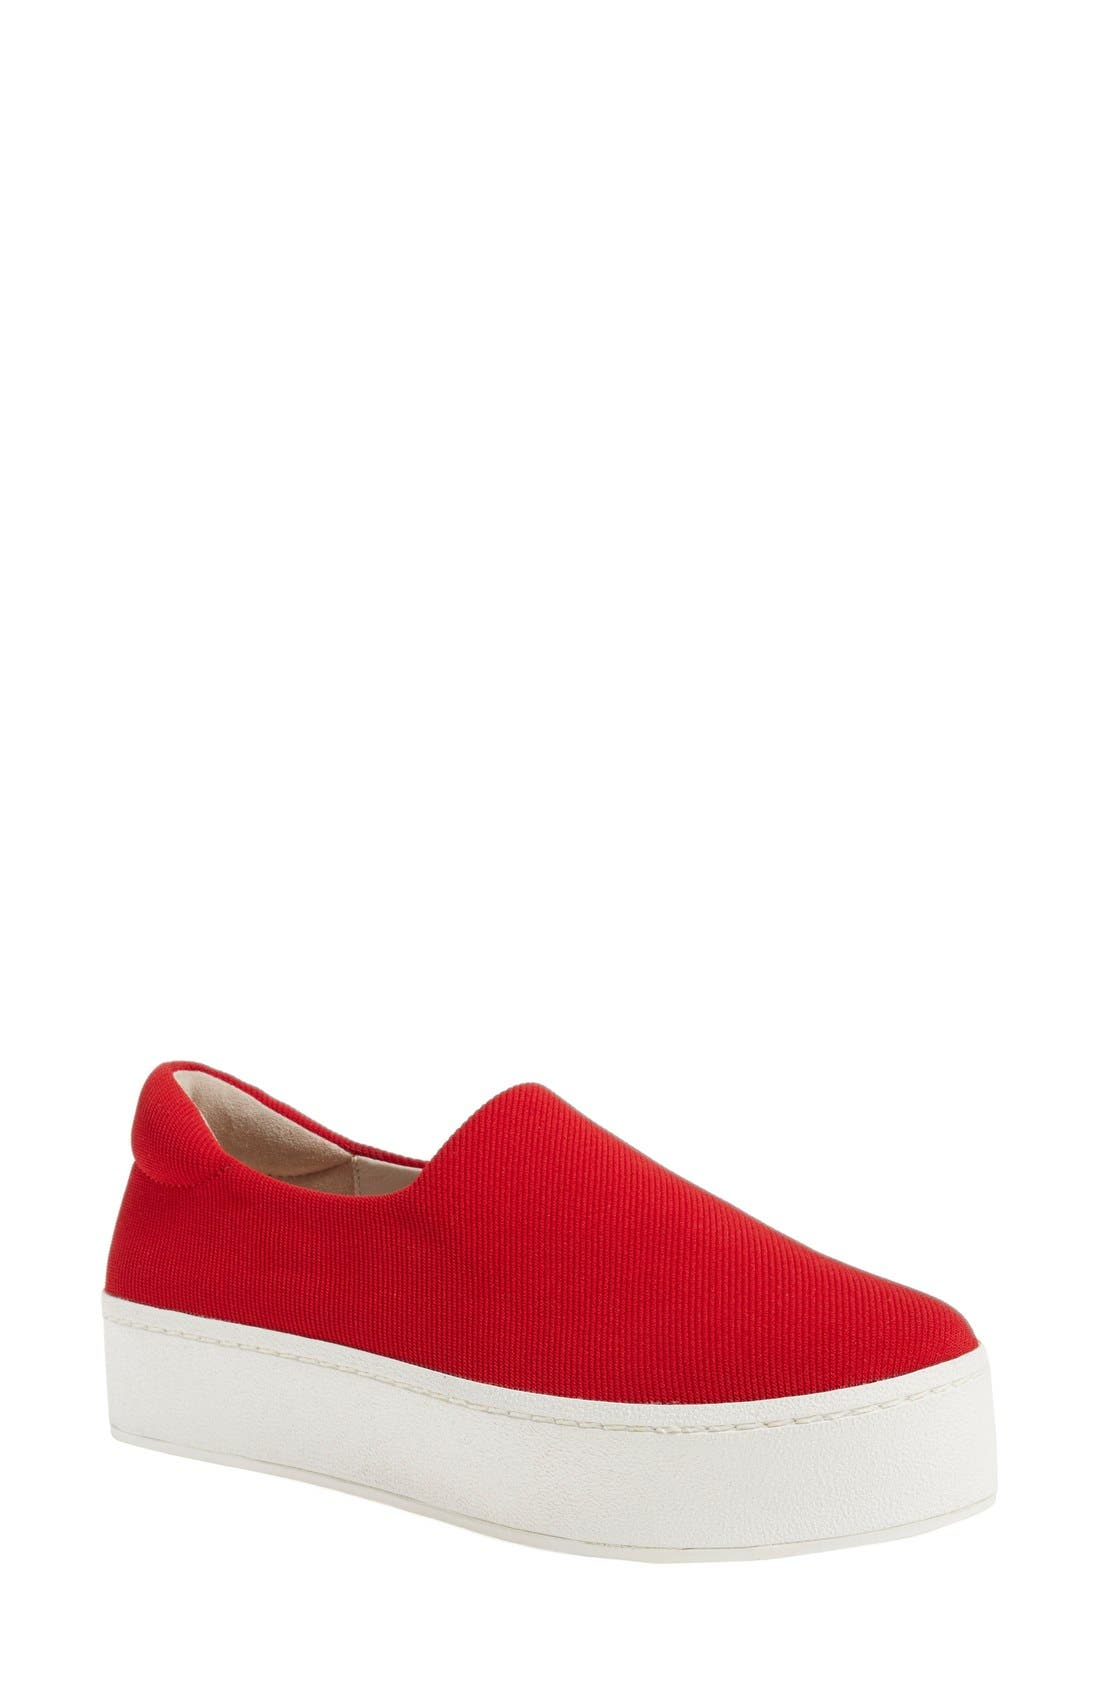 OPENING CEREMONY Cici Platform Sneaker